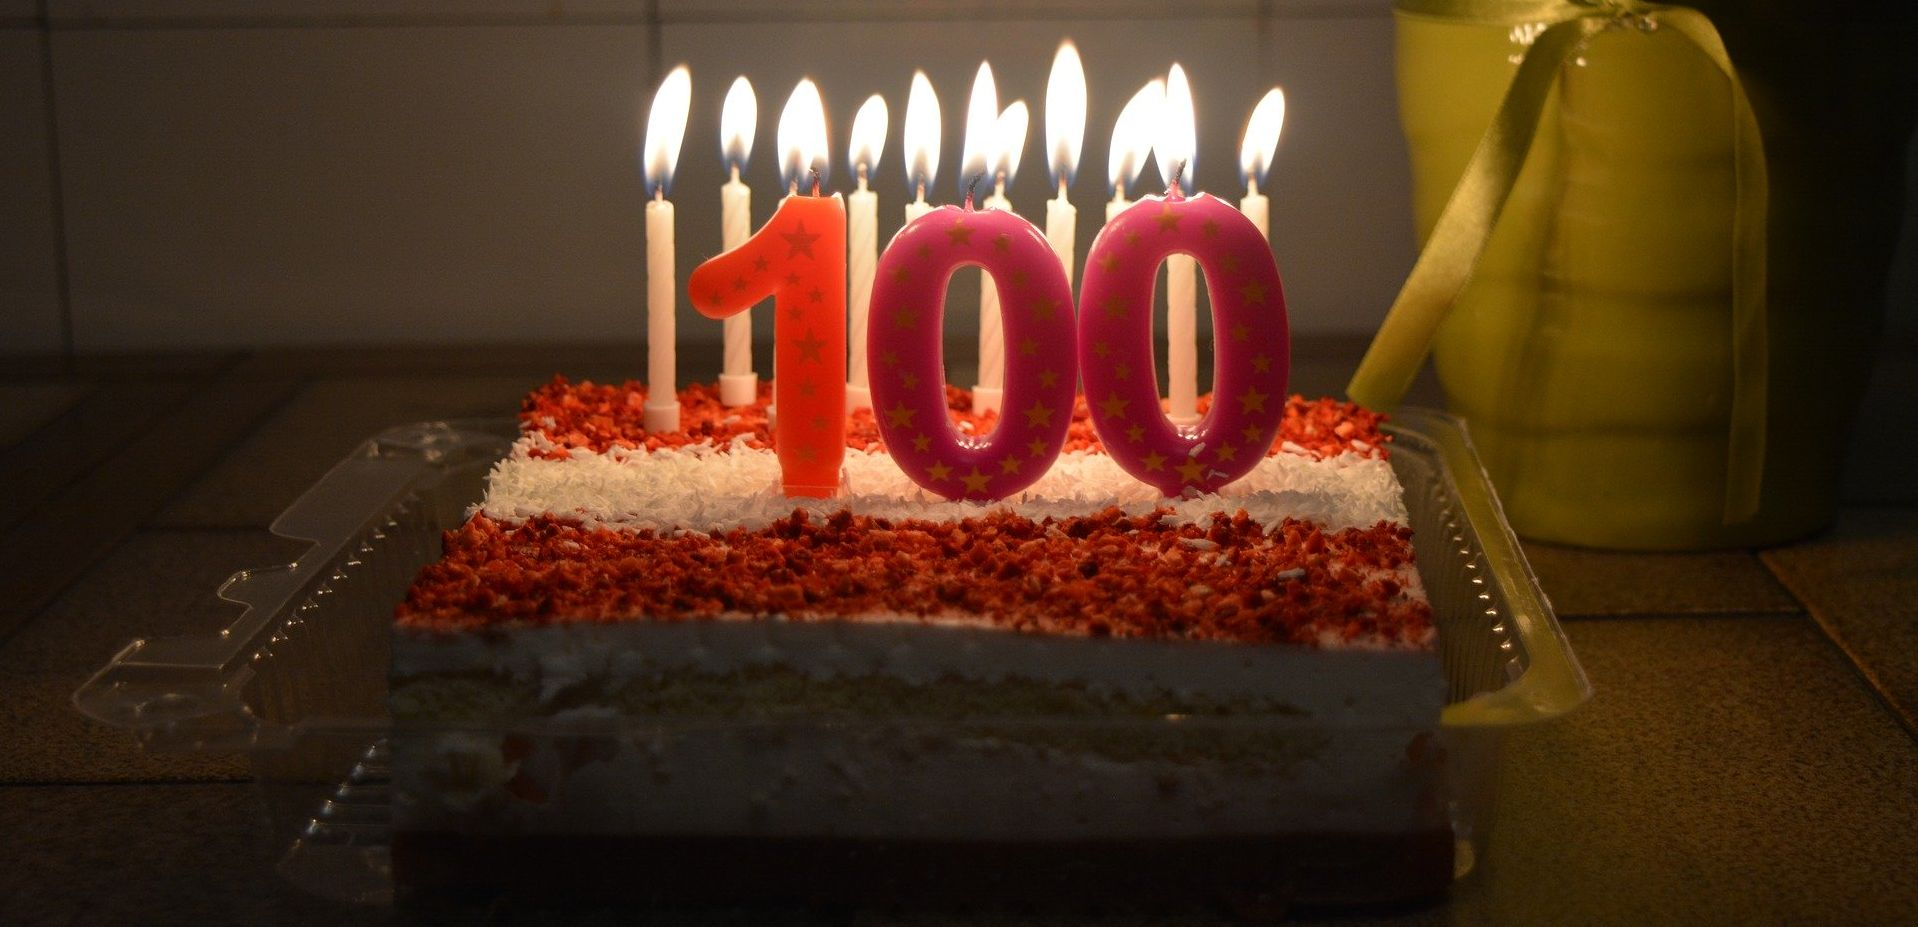 Birthday cake with candles for 100 year old